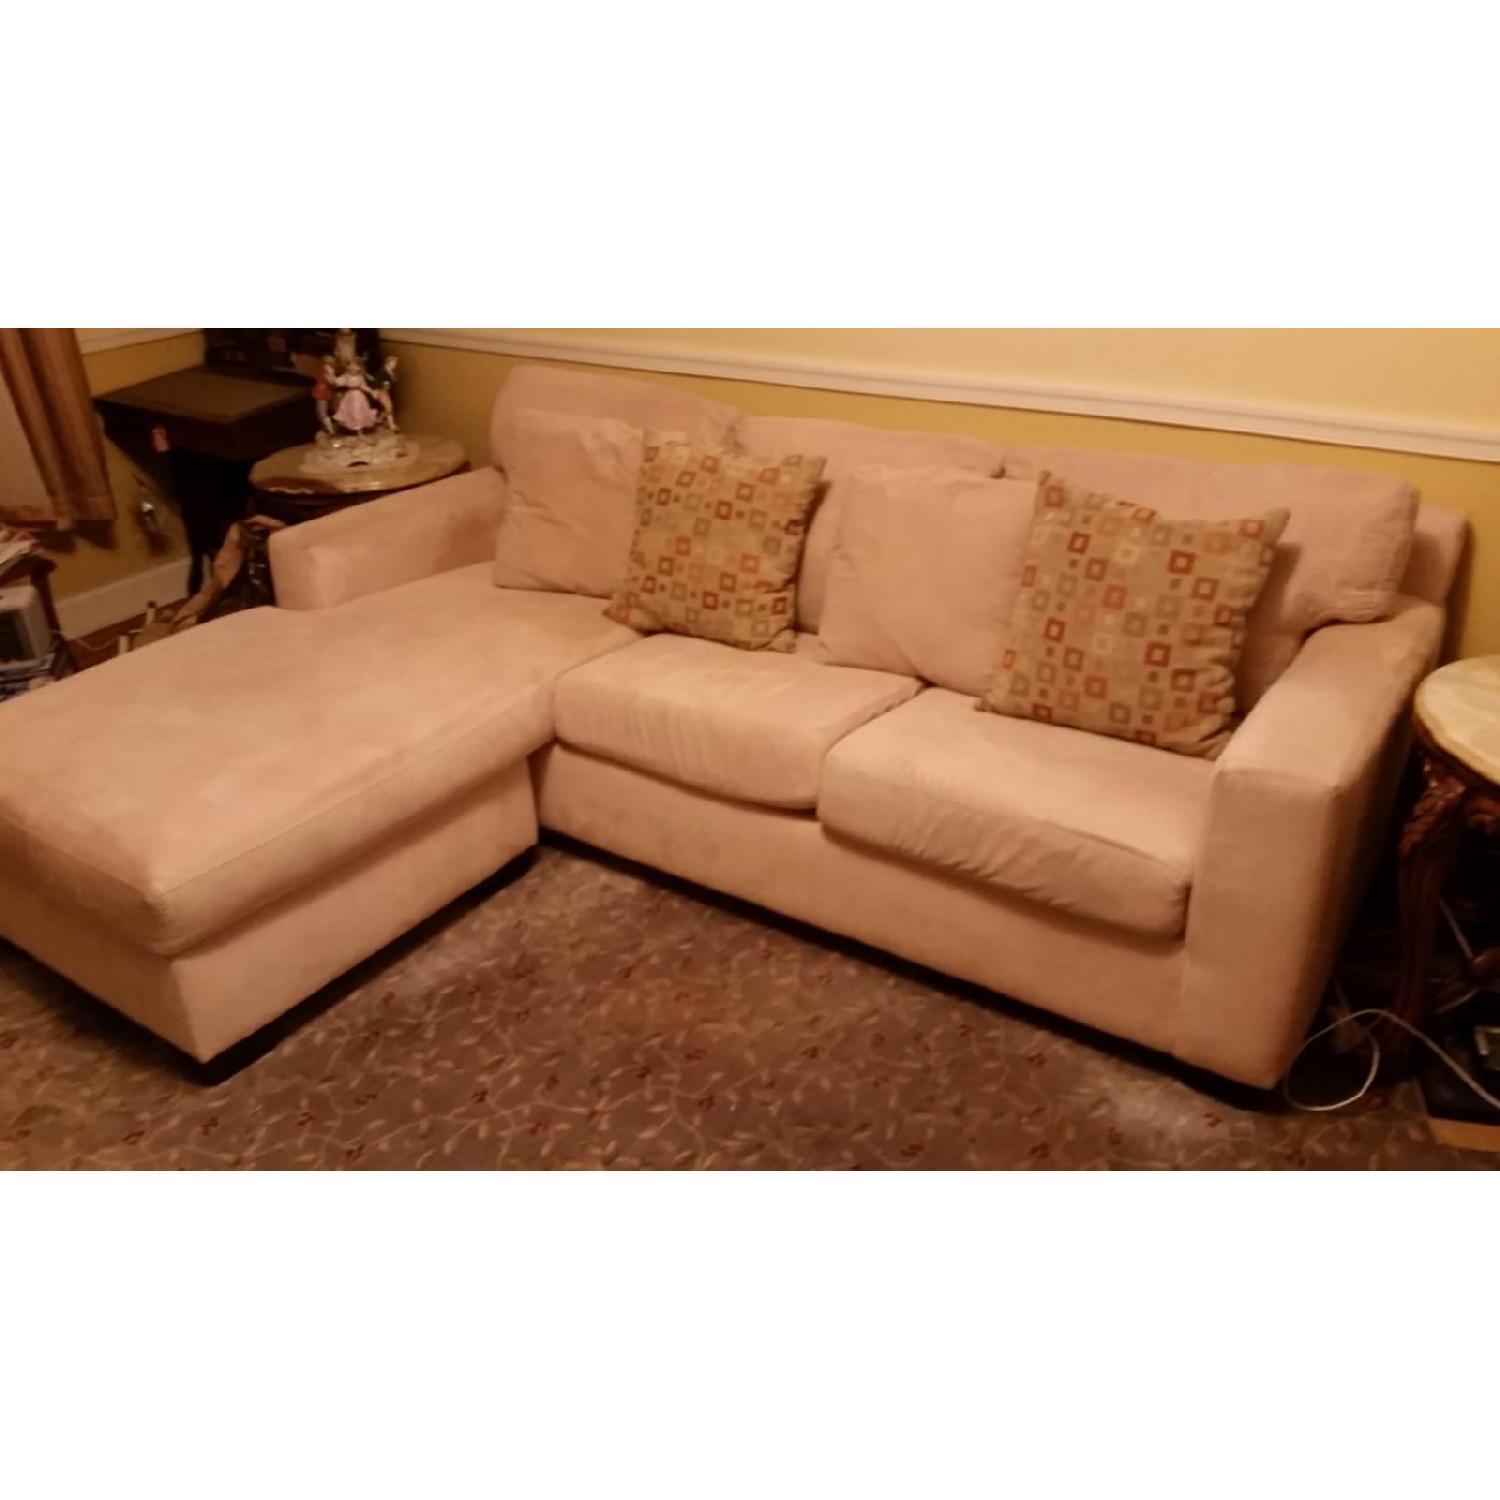 Macy's Portofino Queen Sleeper Sectional Sofa - image-2